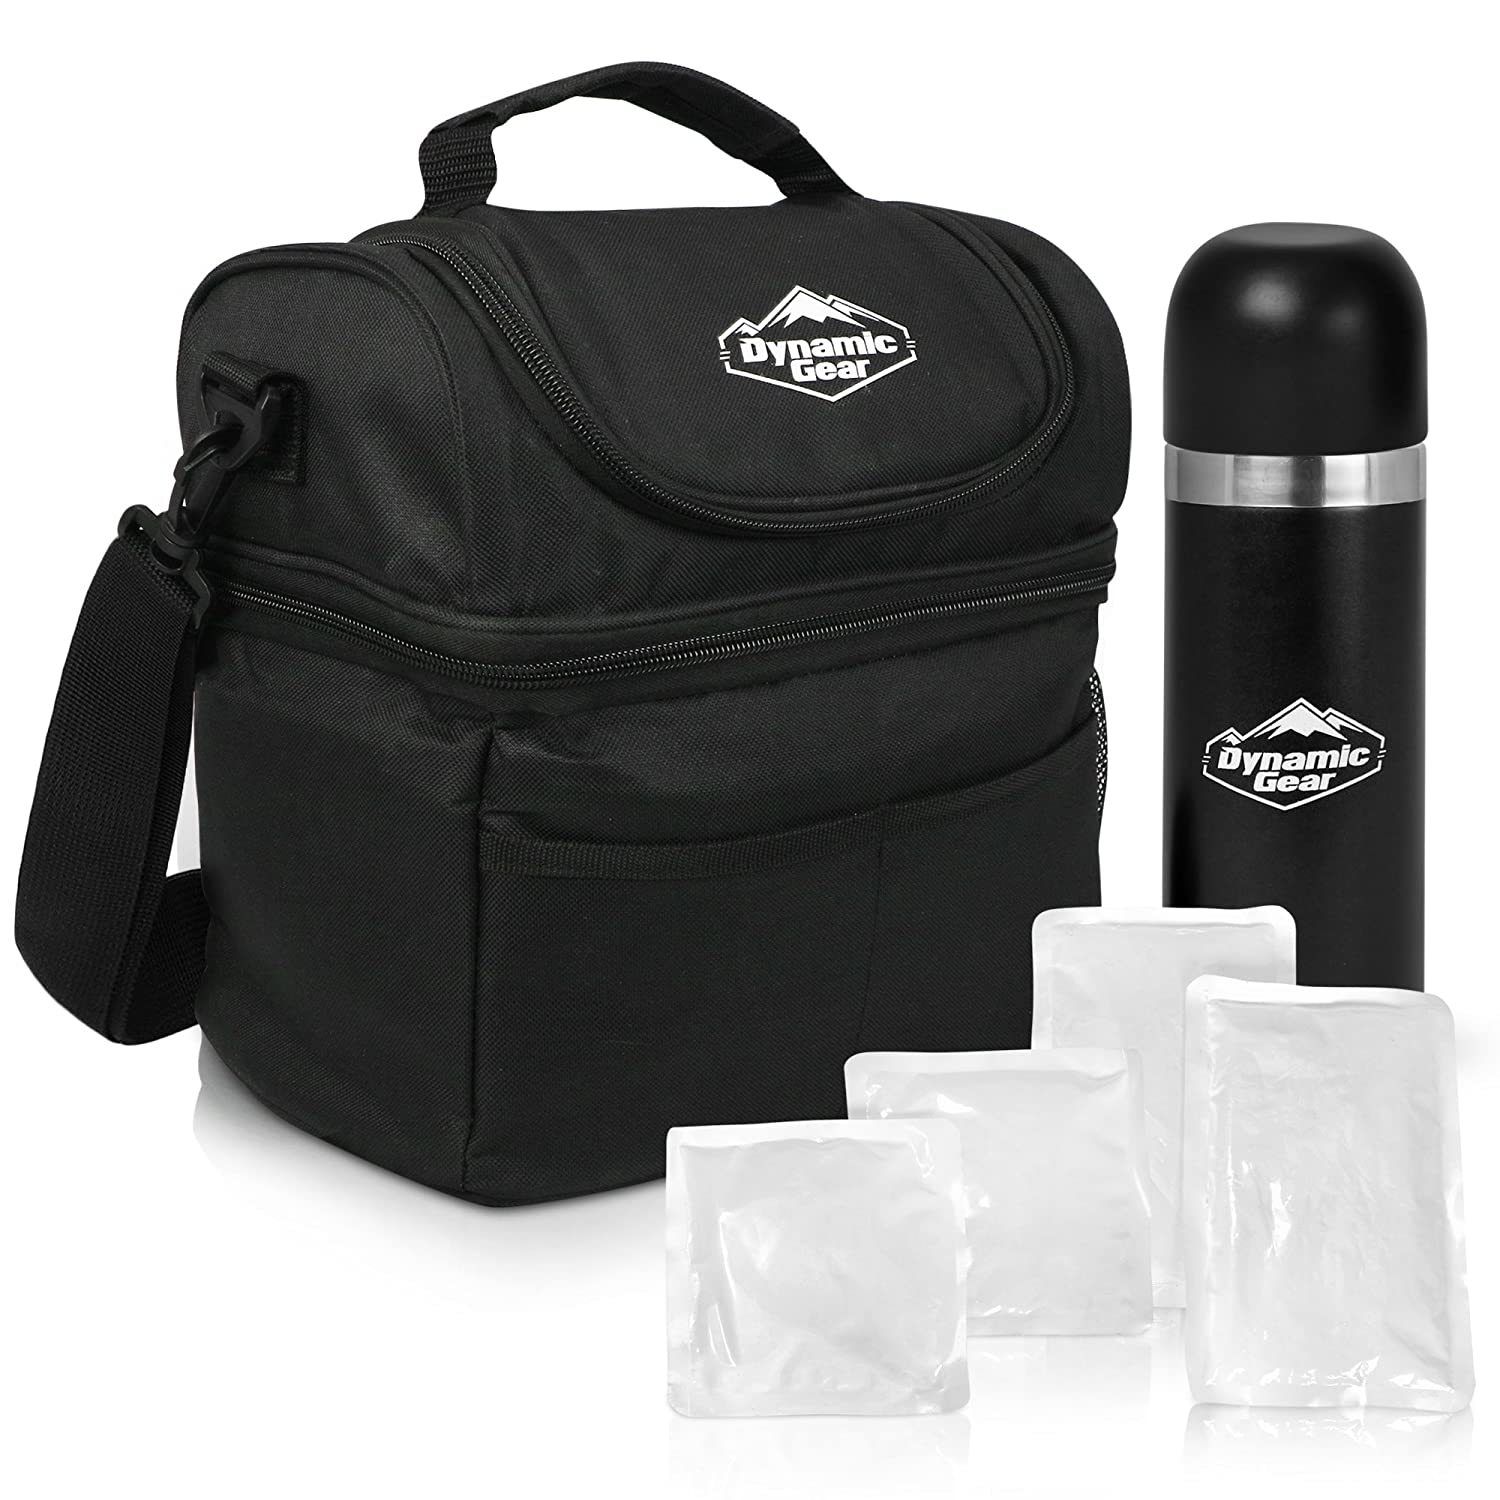 Dynamic Gear Refrigerated Lunch Box Tote Bag, Large, Adults/Men/Women, Insulated, Mesh Pockets, For Travel/Work/Picnic/Camping, With 16oz Thermos and 4 Cooler Pouches!